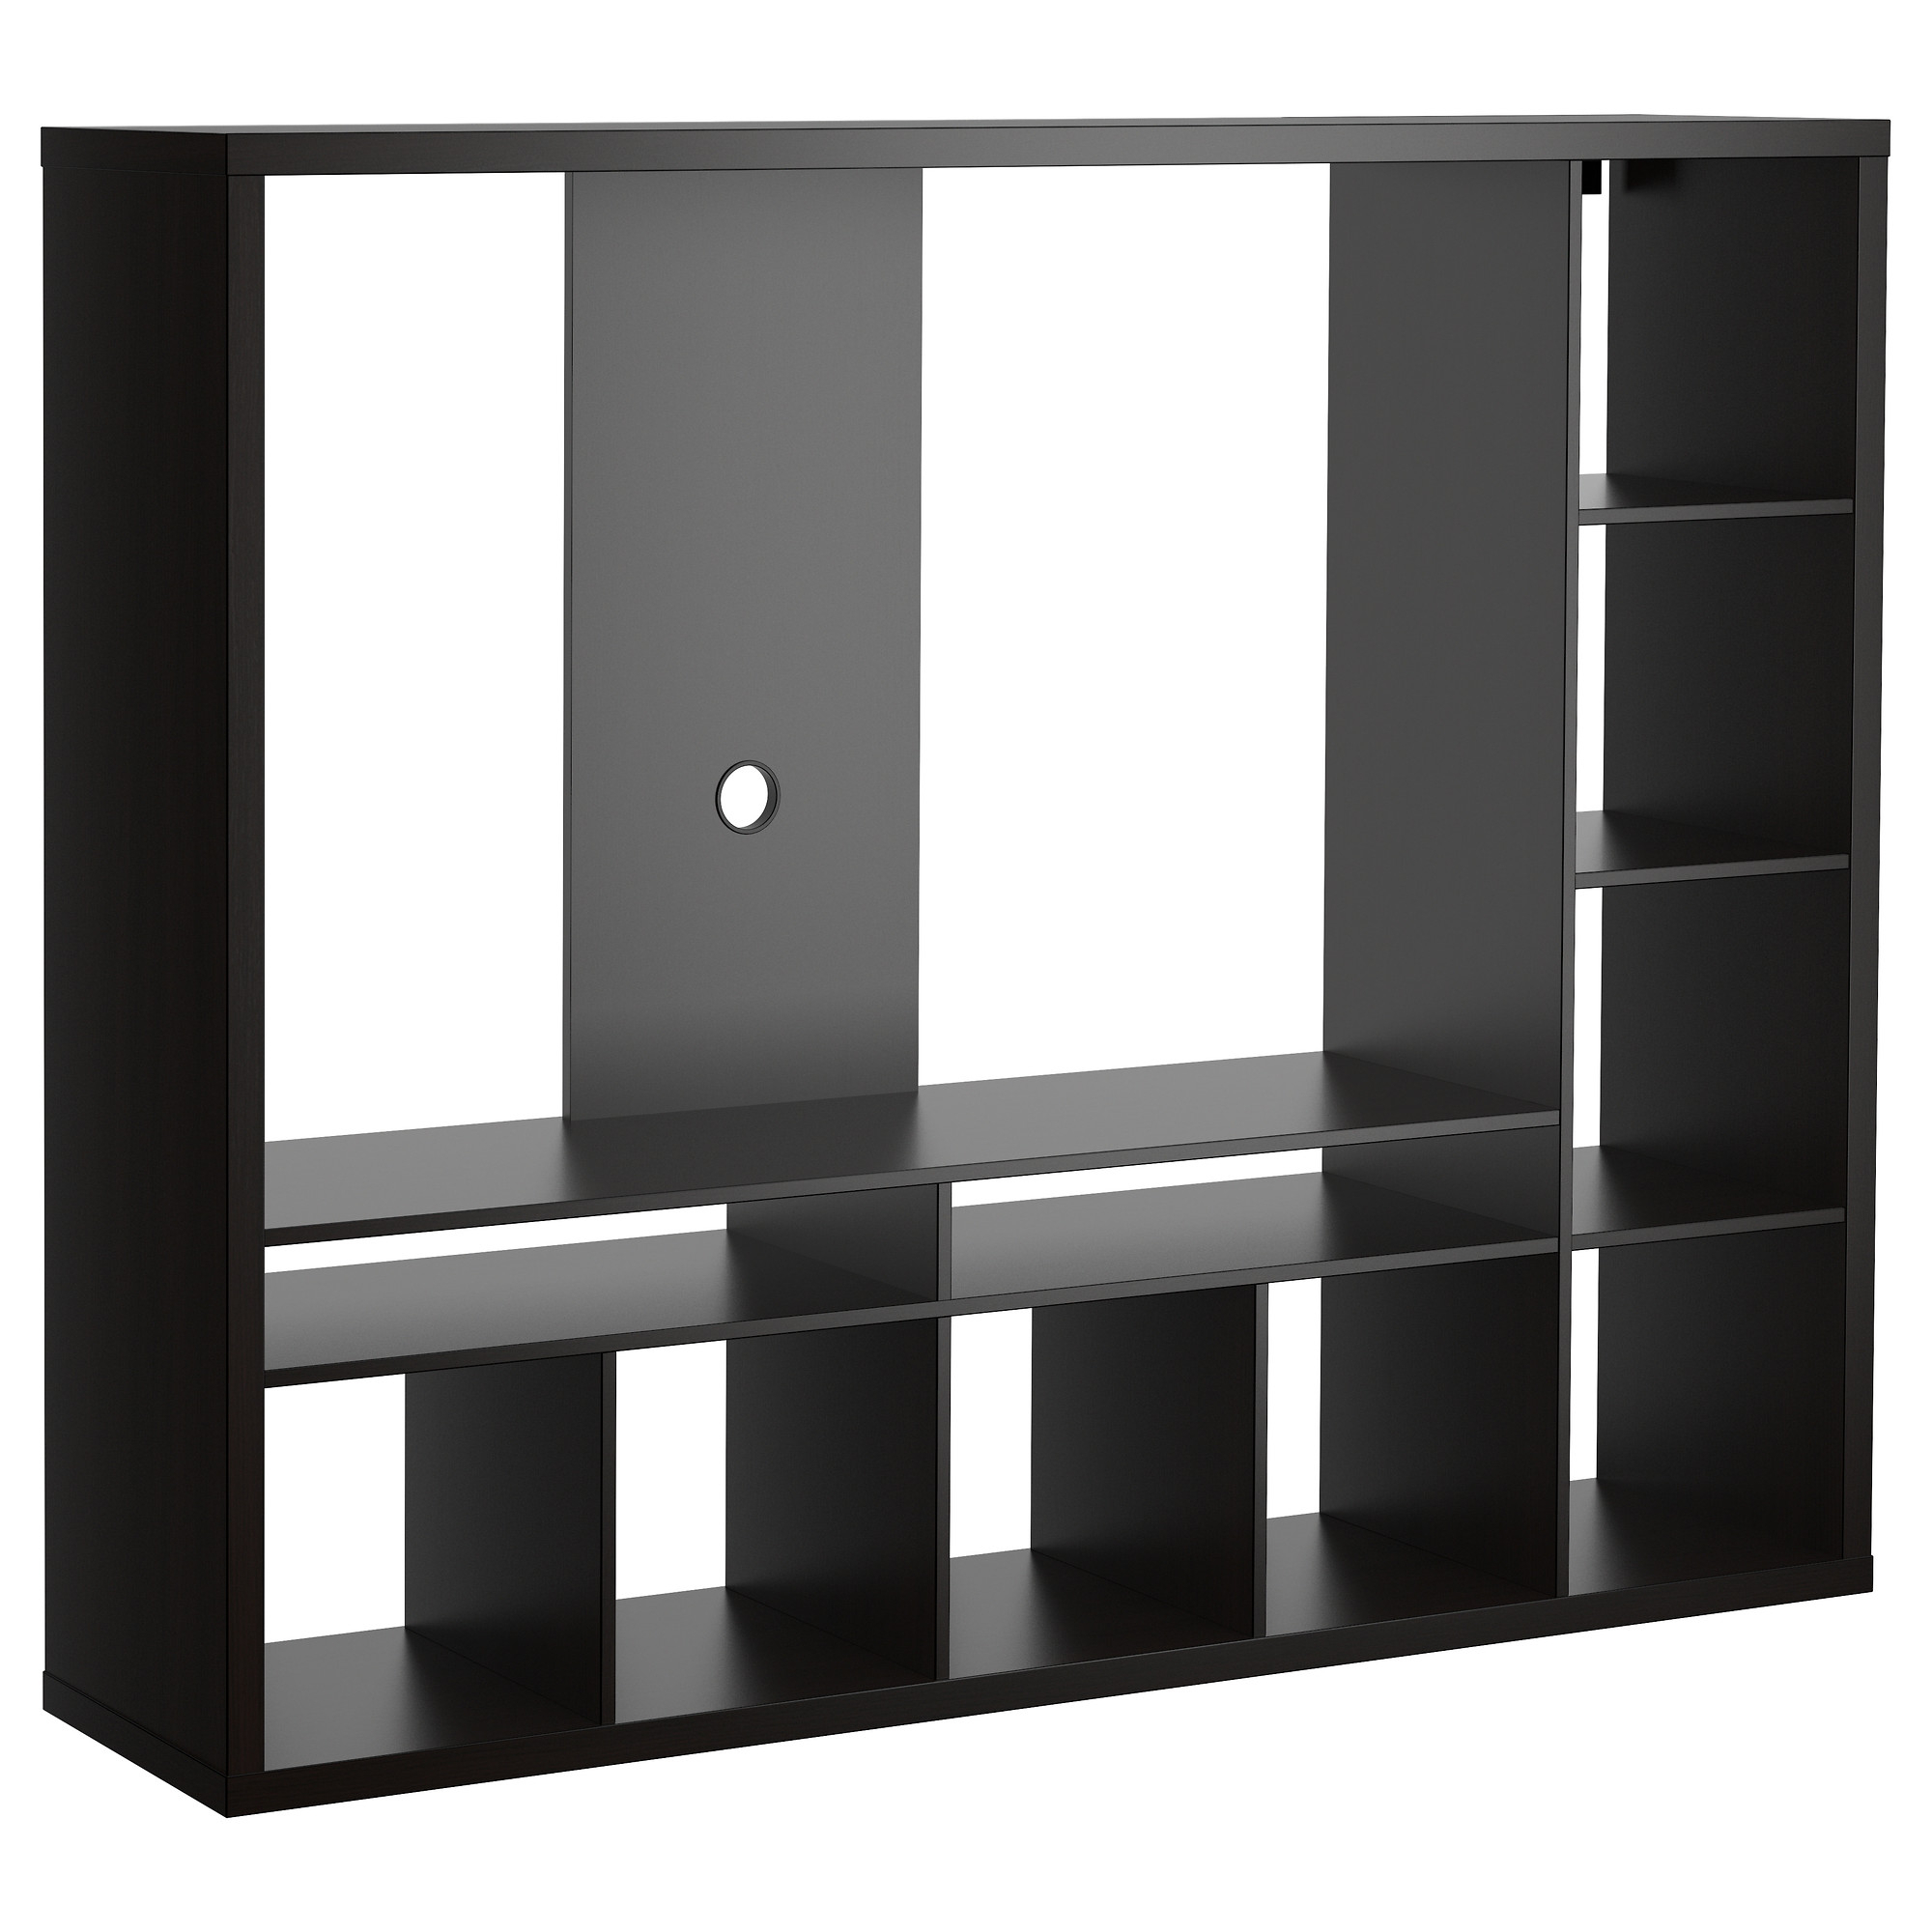 Playroom Tv Stands Intended For 2017 Media Console Modern Entertainment Center Ikea Tv Stand Design (View 15 of 20)